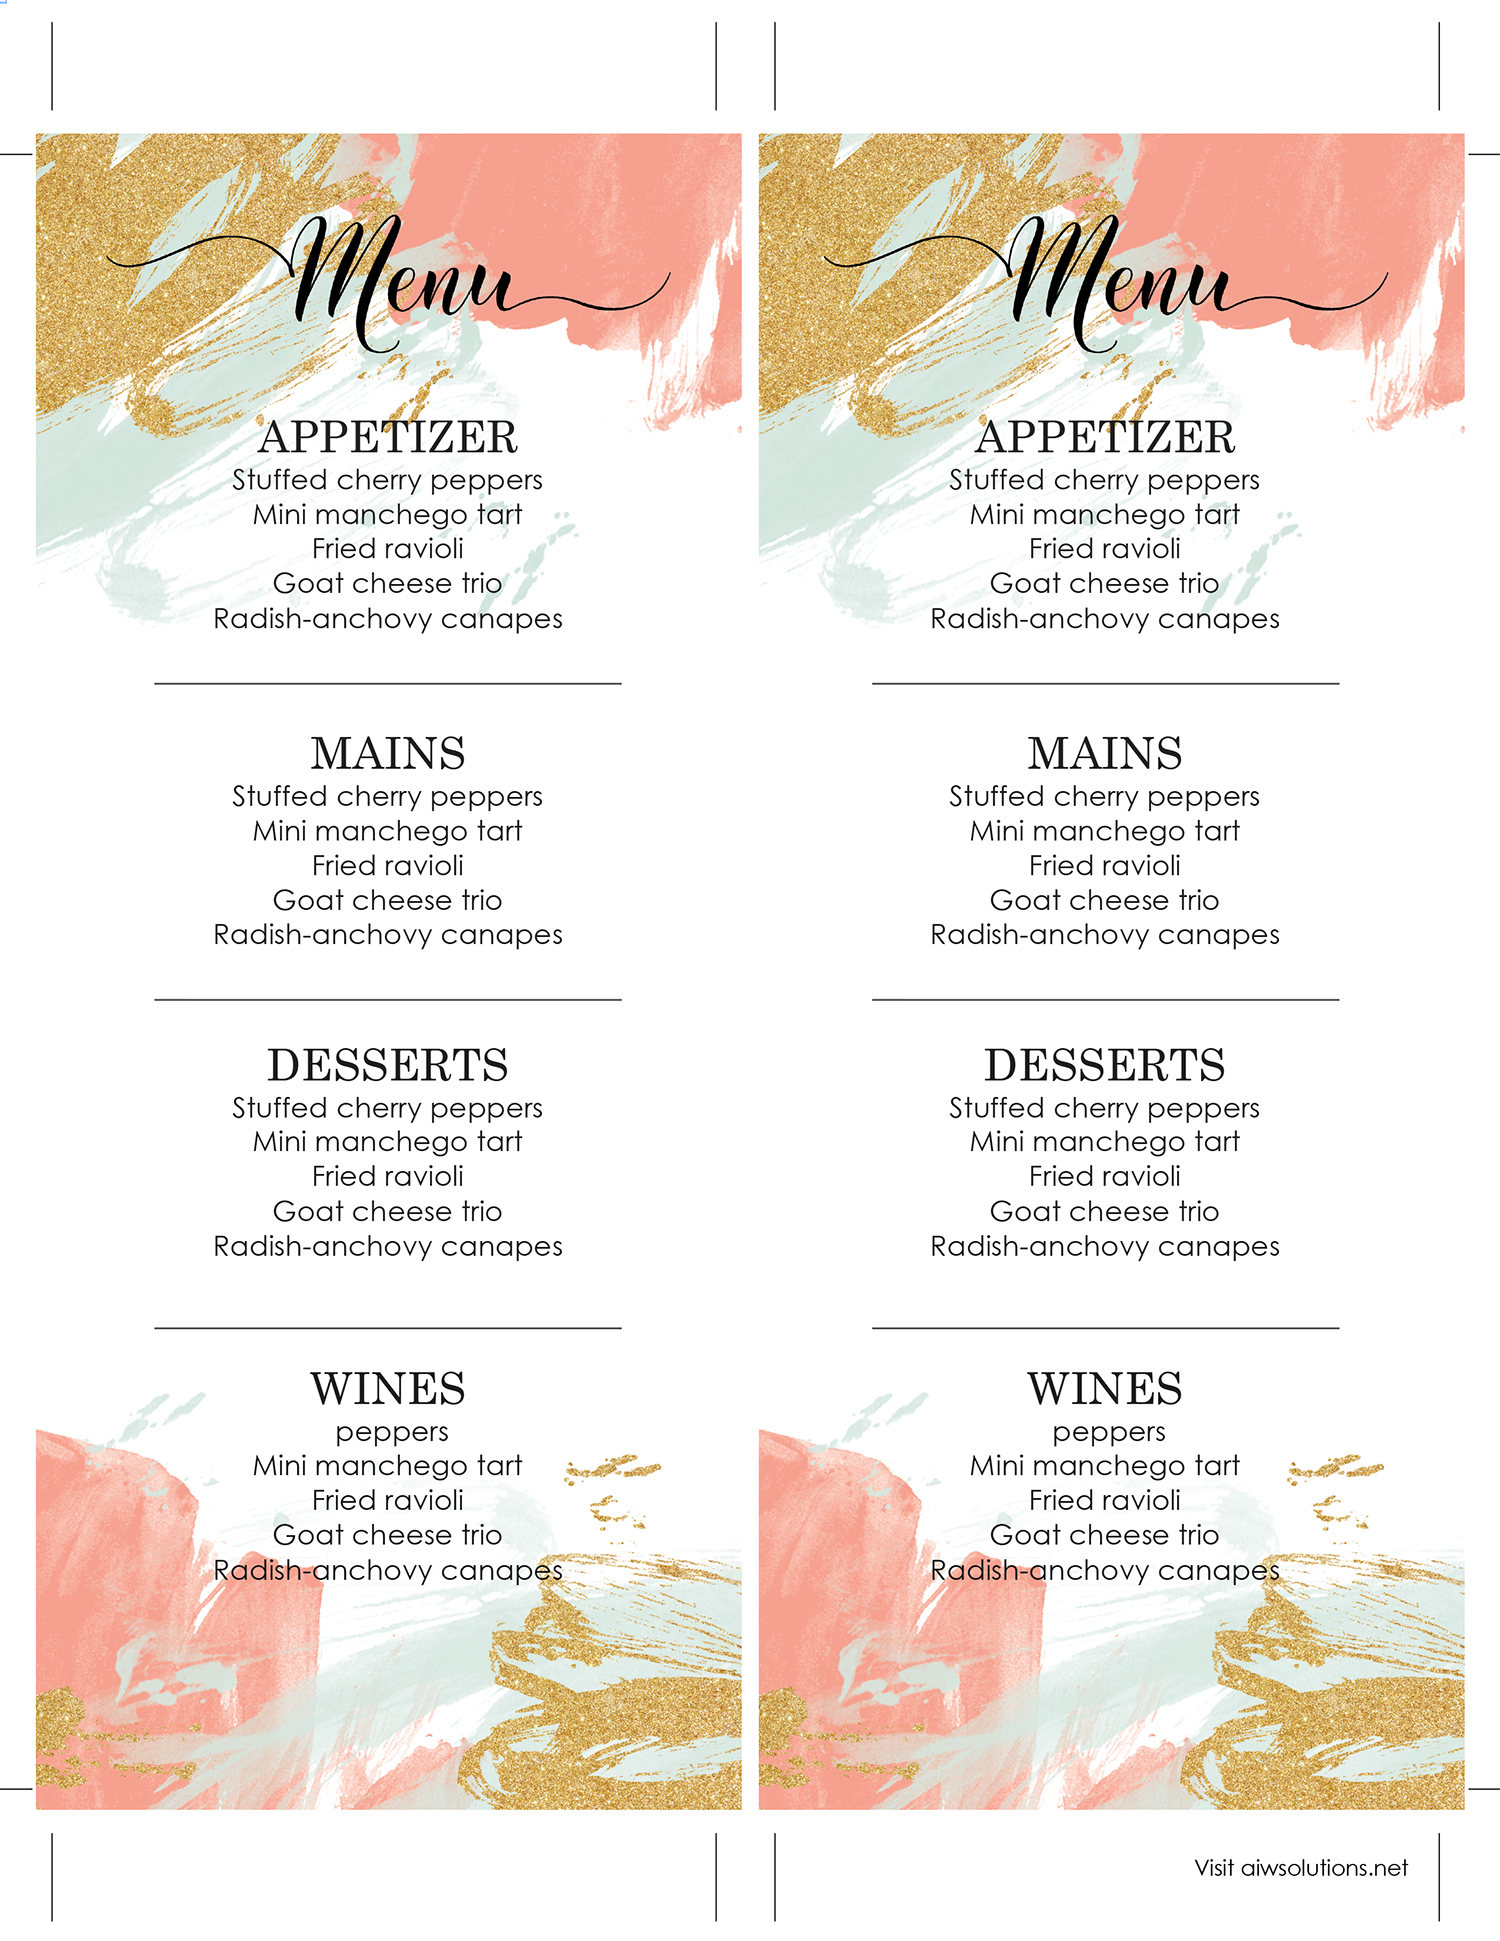 wine list template free word - Akba.greenw.co